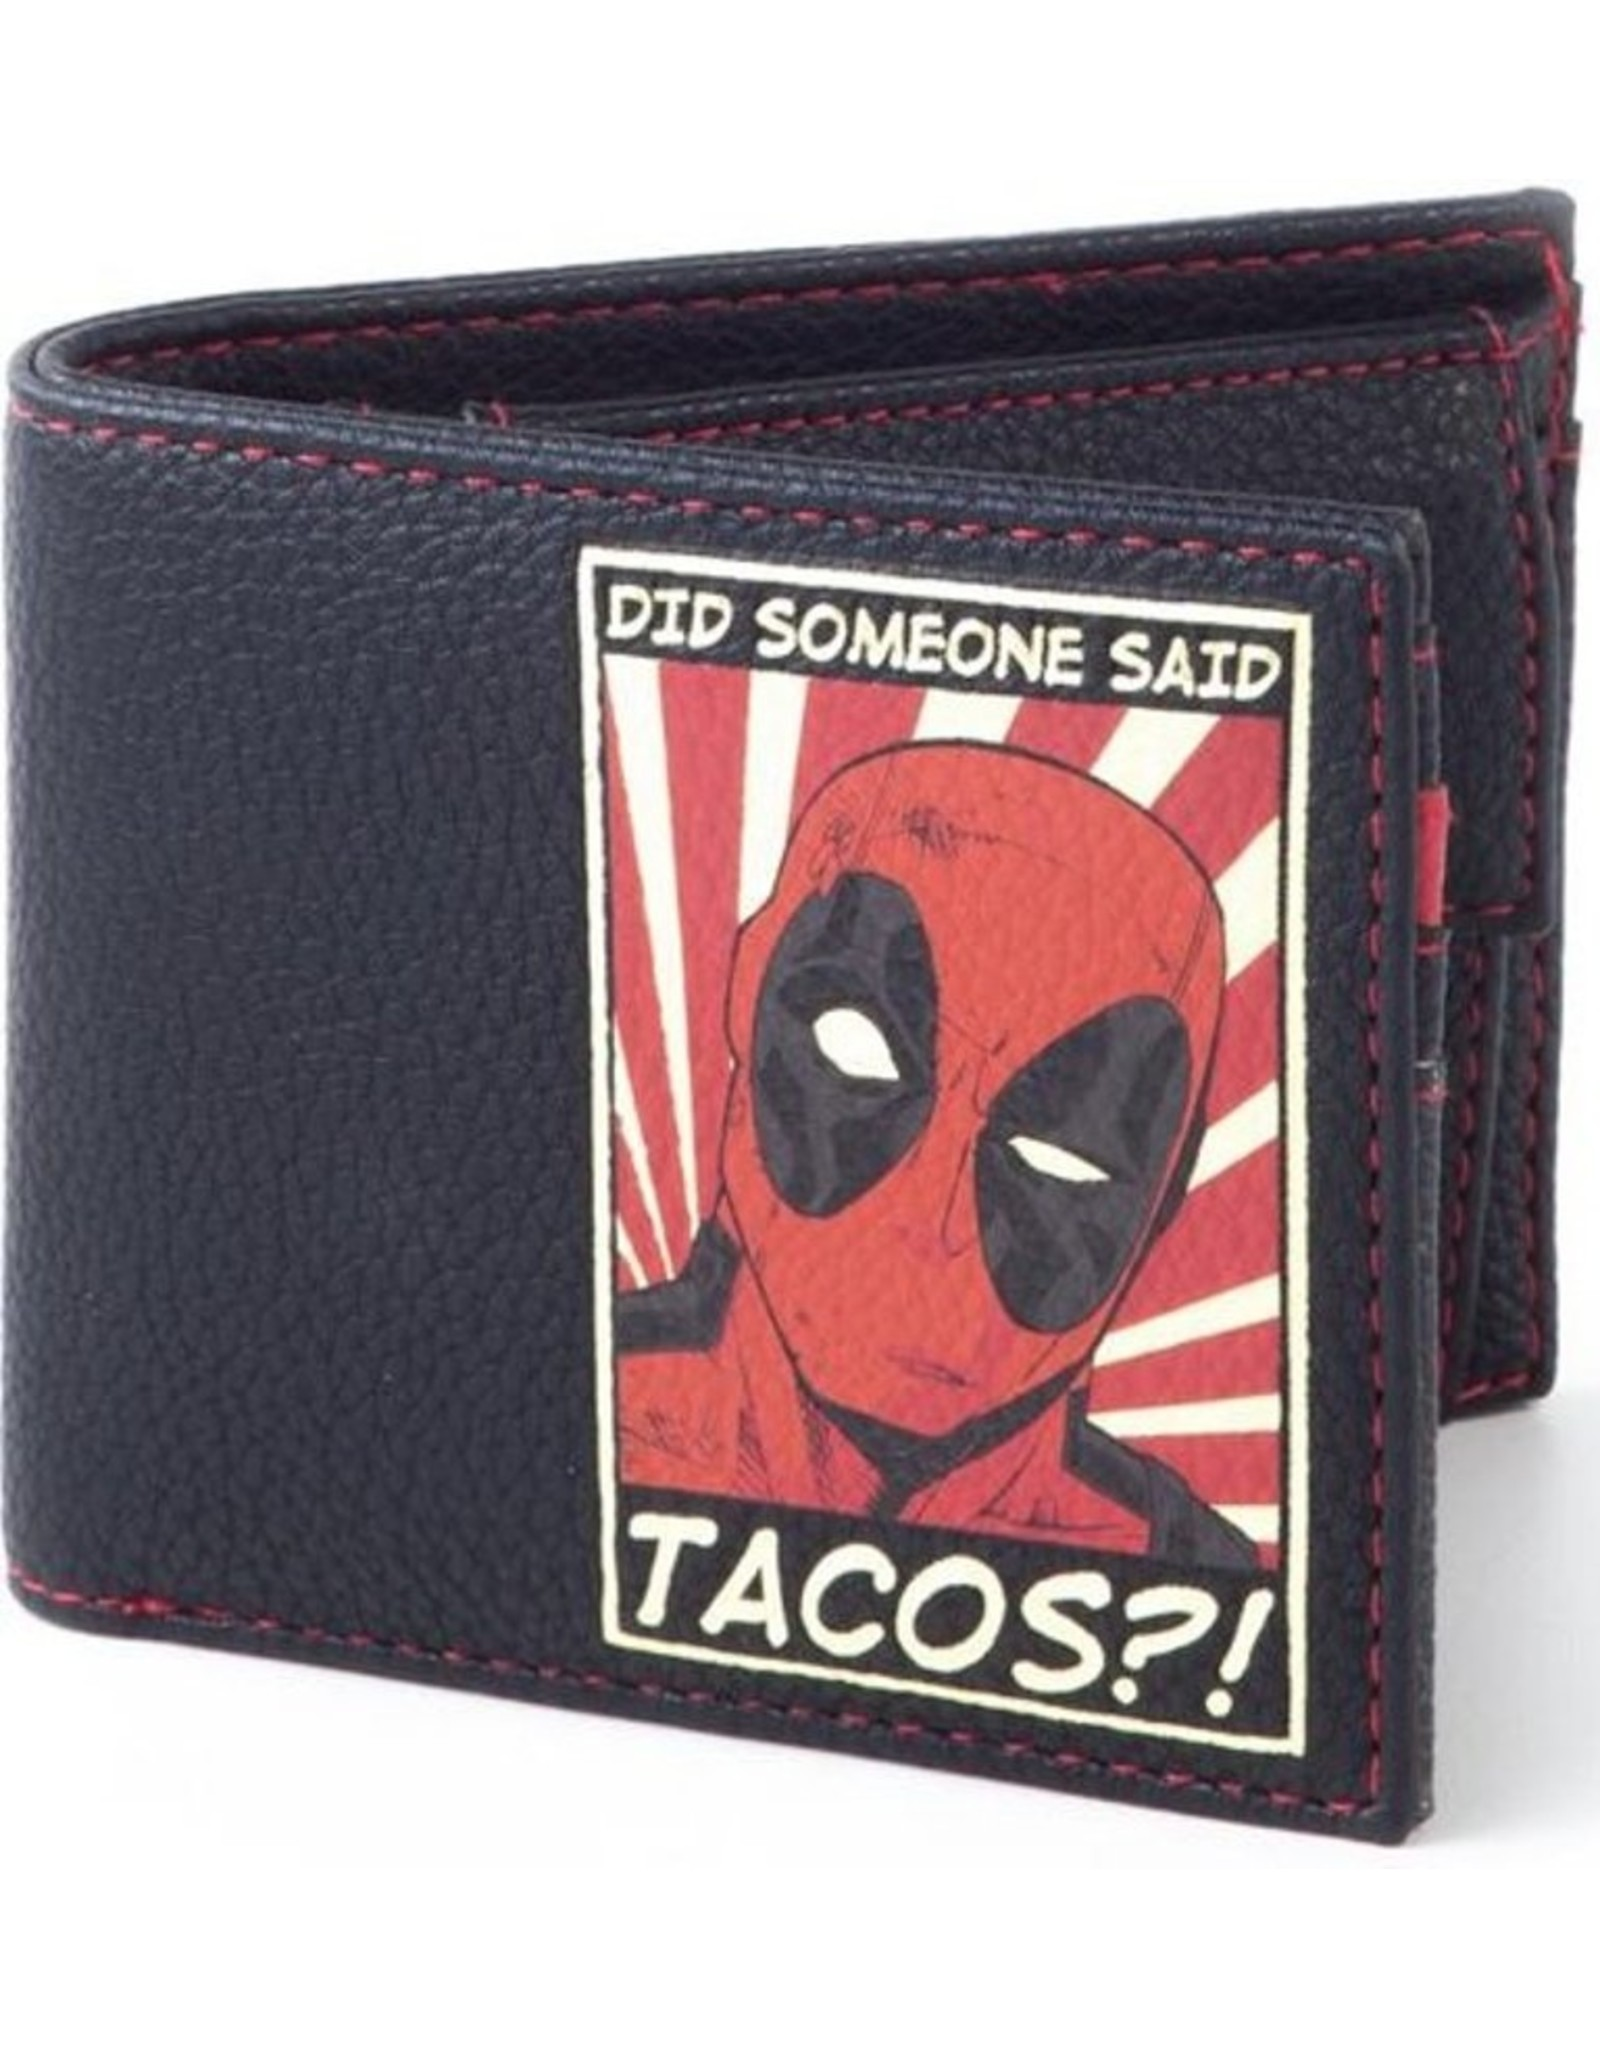 Difuzed Marvel tassen en portemonnees -  Marvel Deadpool Tacos portemonnee